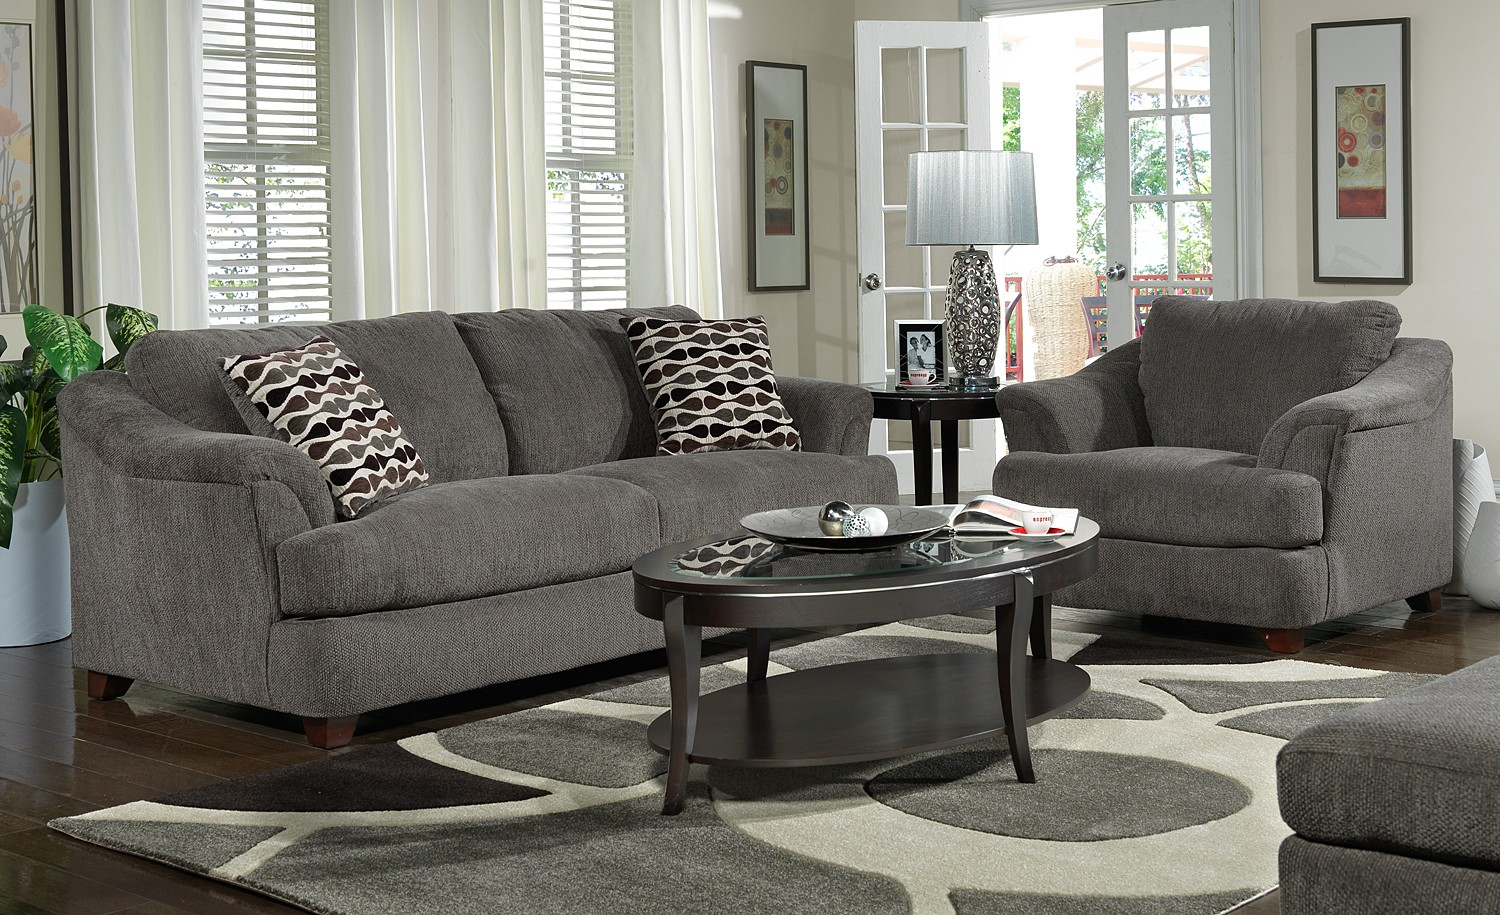 lovely grey sofa decor 38 with additional office sofa ideas with grey sofa decor